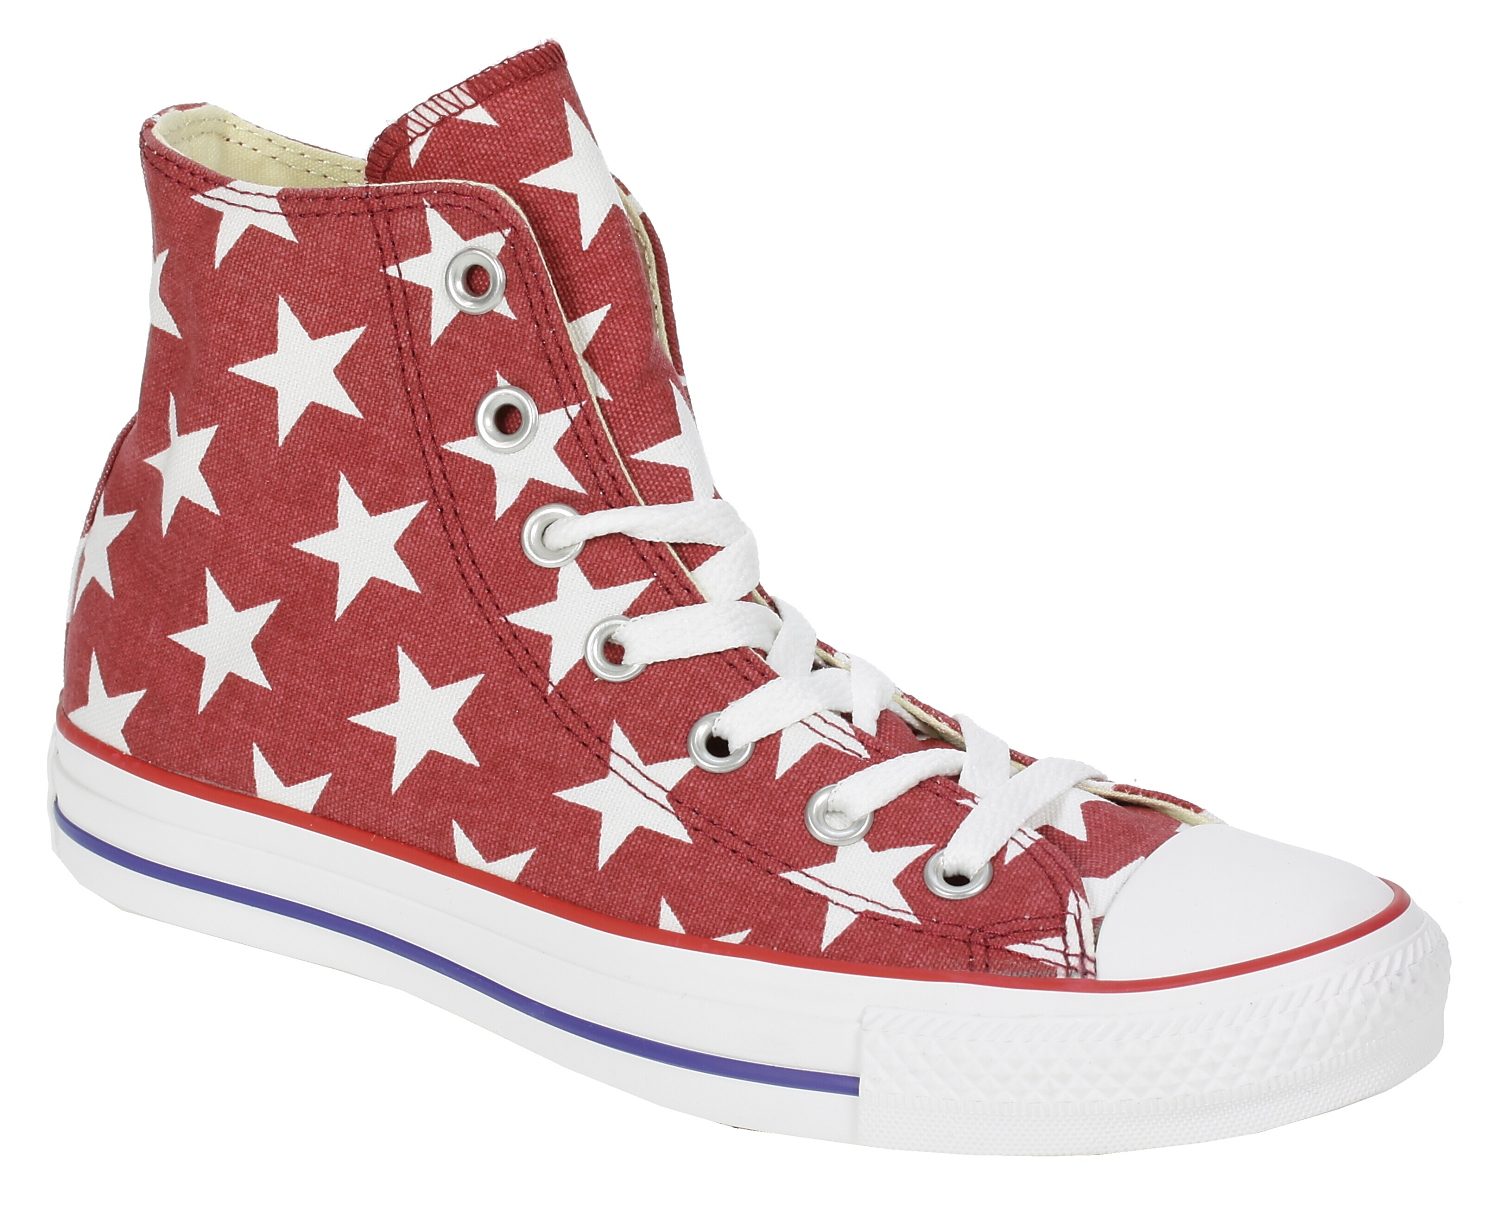 d05d1a824a2d boty Converse Chuck Taylor All Star Hi 136615C - Jester Red White -  Snowboard shop